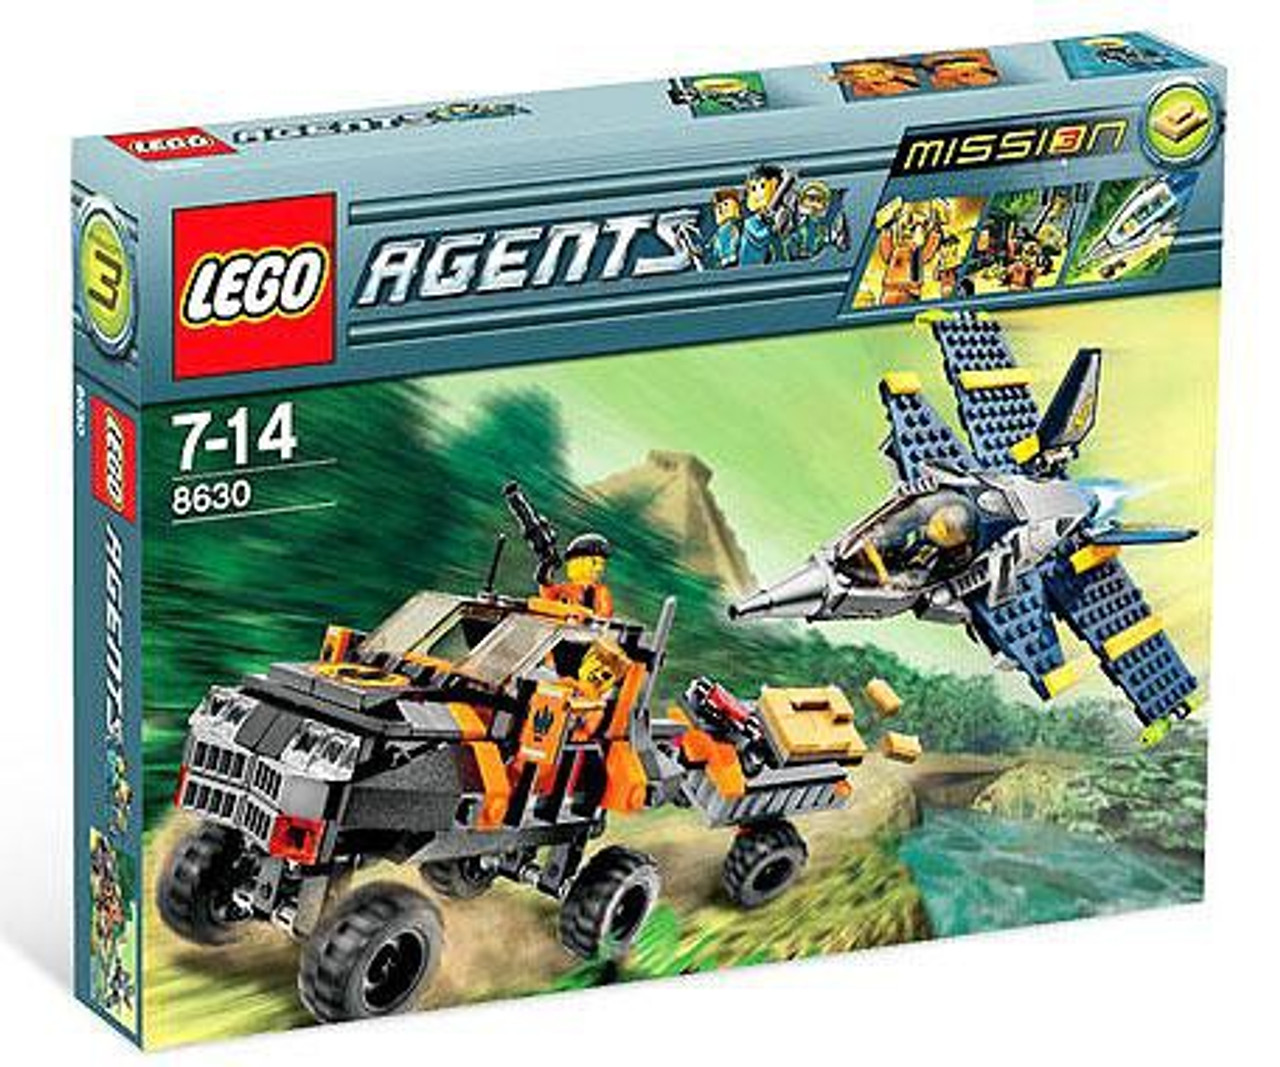 LEGO Agents Mission 3: Gold Hunt Set #8630